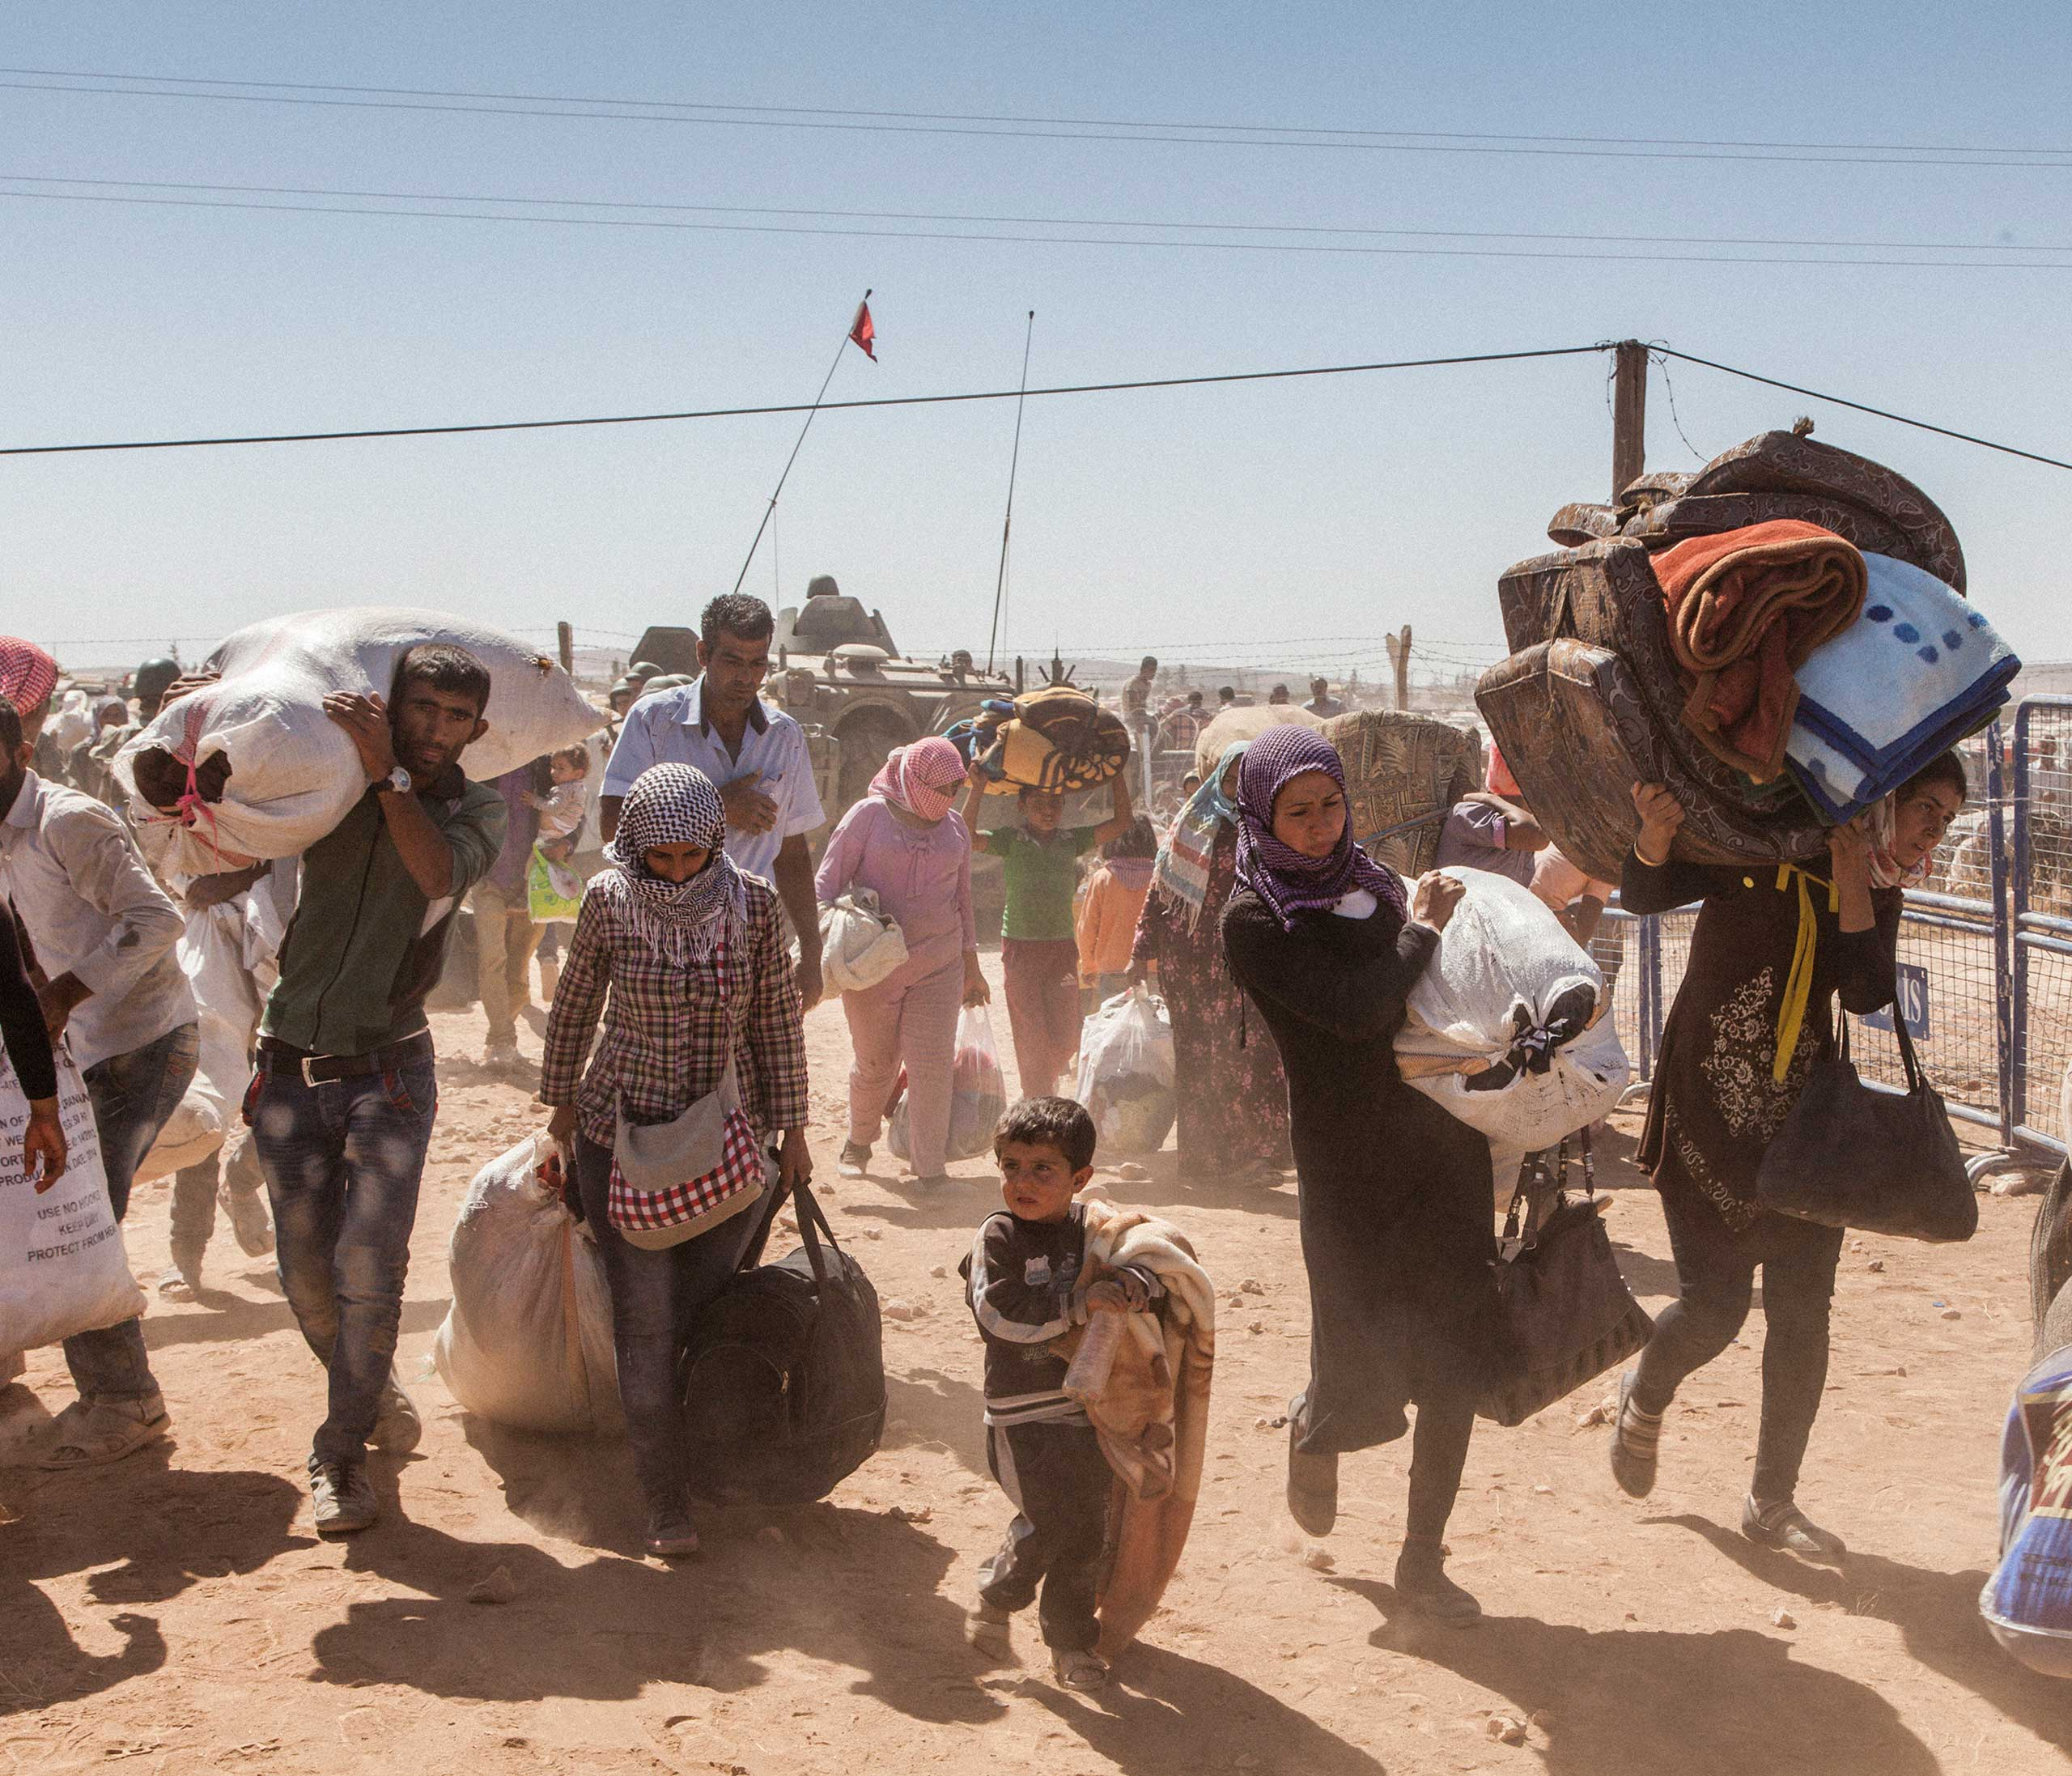 Syrian refugees cross the border from Syria into Turkey after fleeing fighting between Kurdish forces and ISIS around the city of Kobane in North East Syria. Sept. 2014.